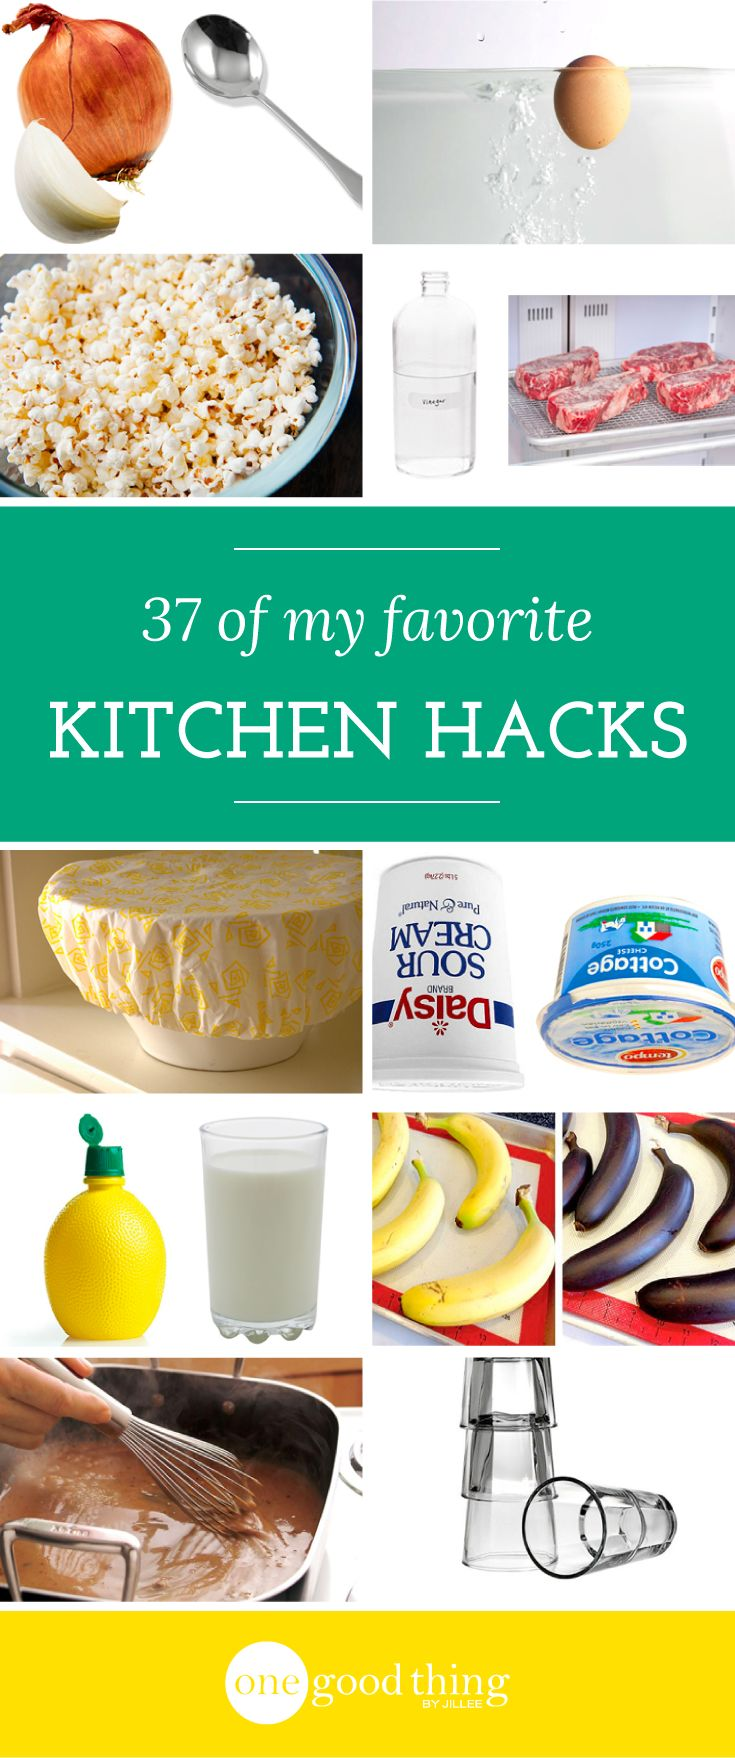 Whether you're a beginning cook or a home chef pro, we could all use a little help in the kitchen from time to time.